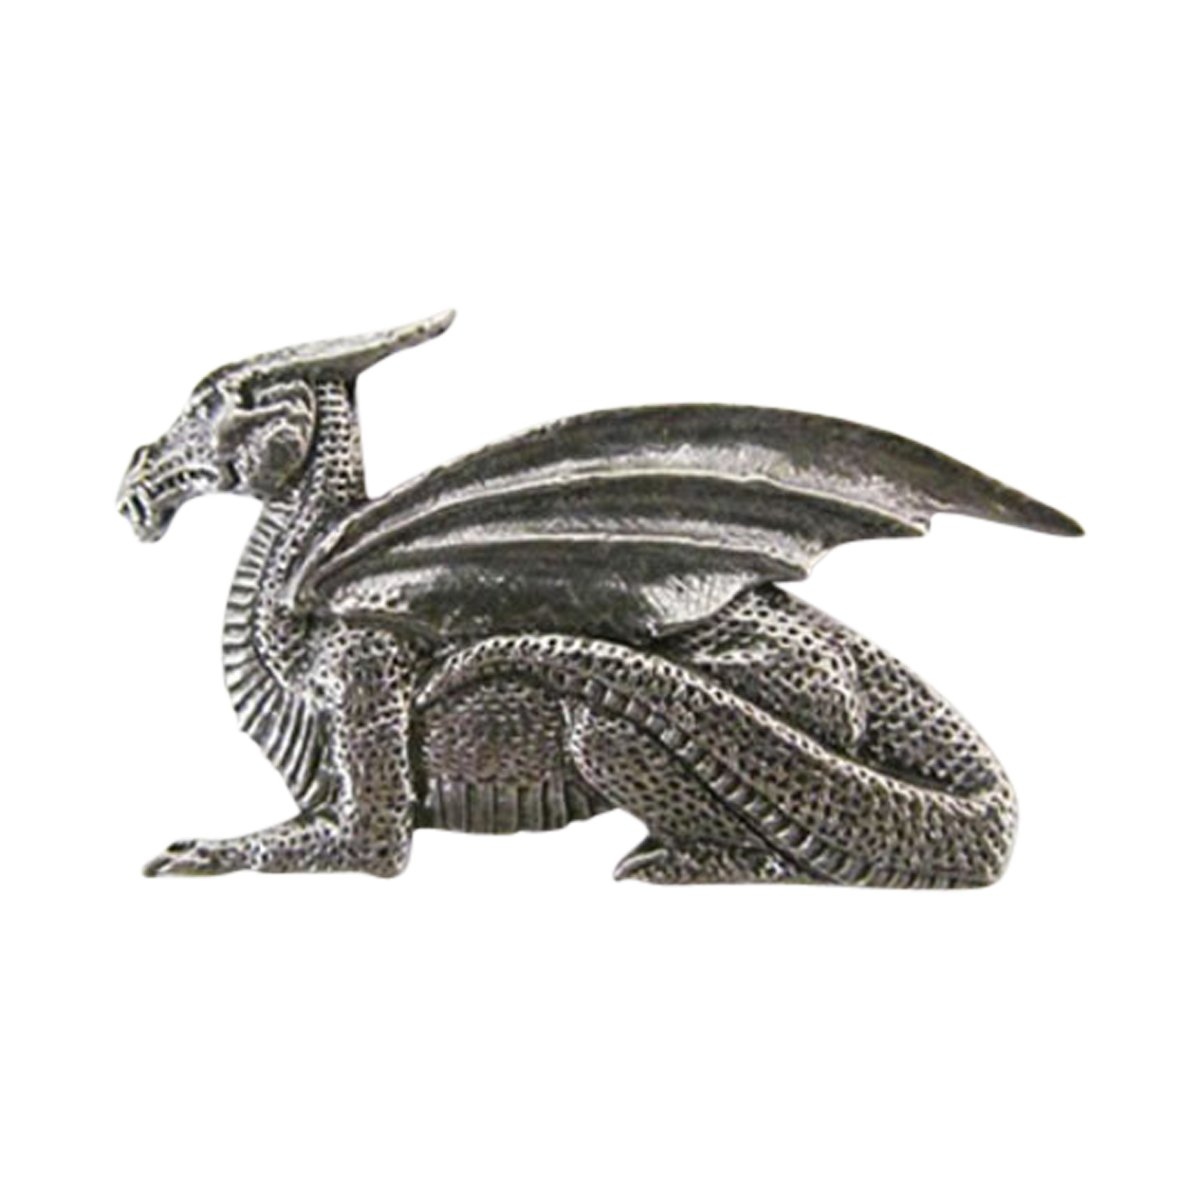 Creative Pewter Designs, Pewter Dragon With Wings Premium Lapel Pin Brooch, Antiqued Finish, A176PR